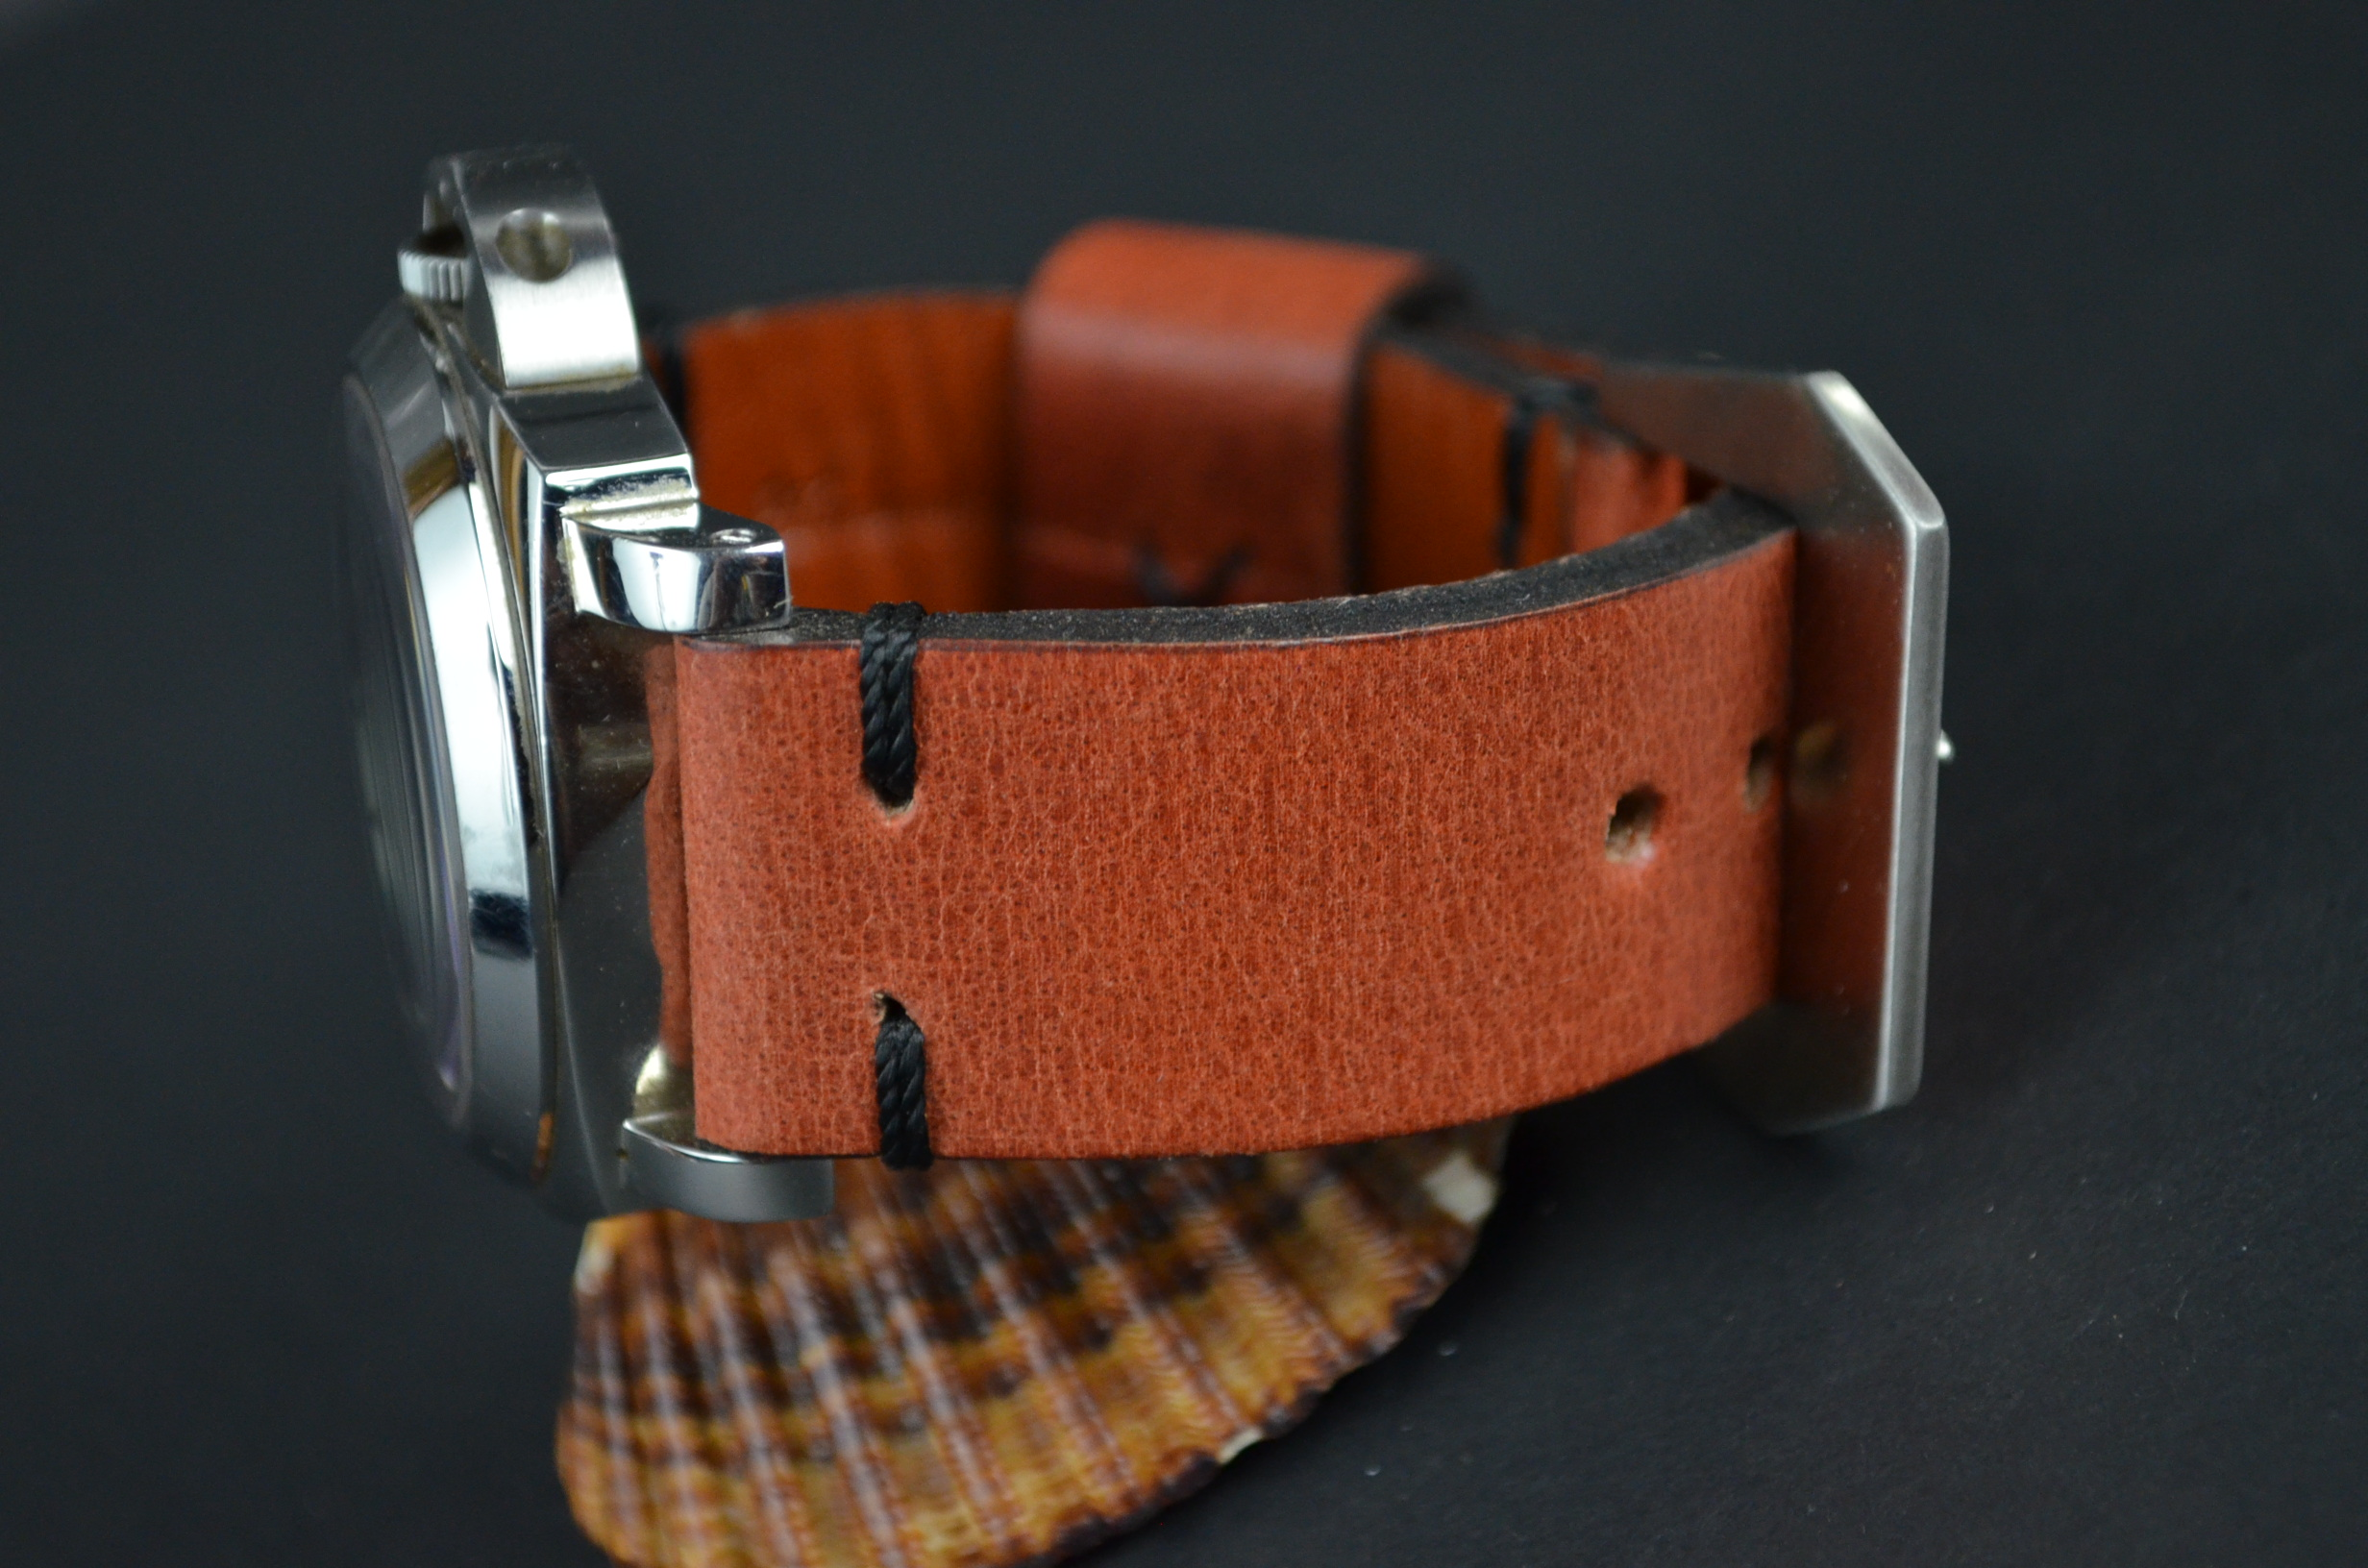 JABUGO is one of our hand crafted watch straps. Available in terracotta color, 4.5 - 5 mm thick.